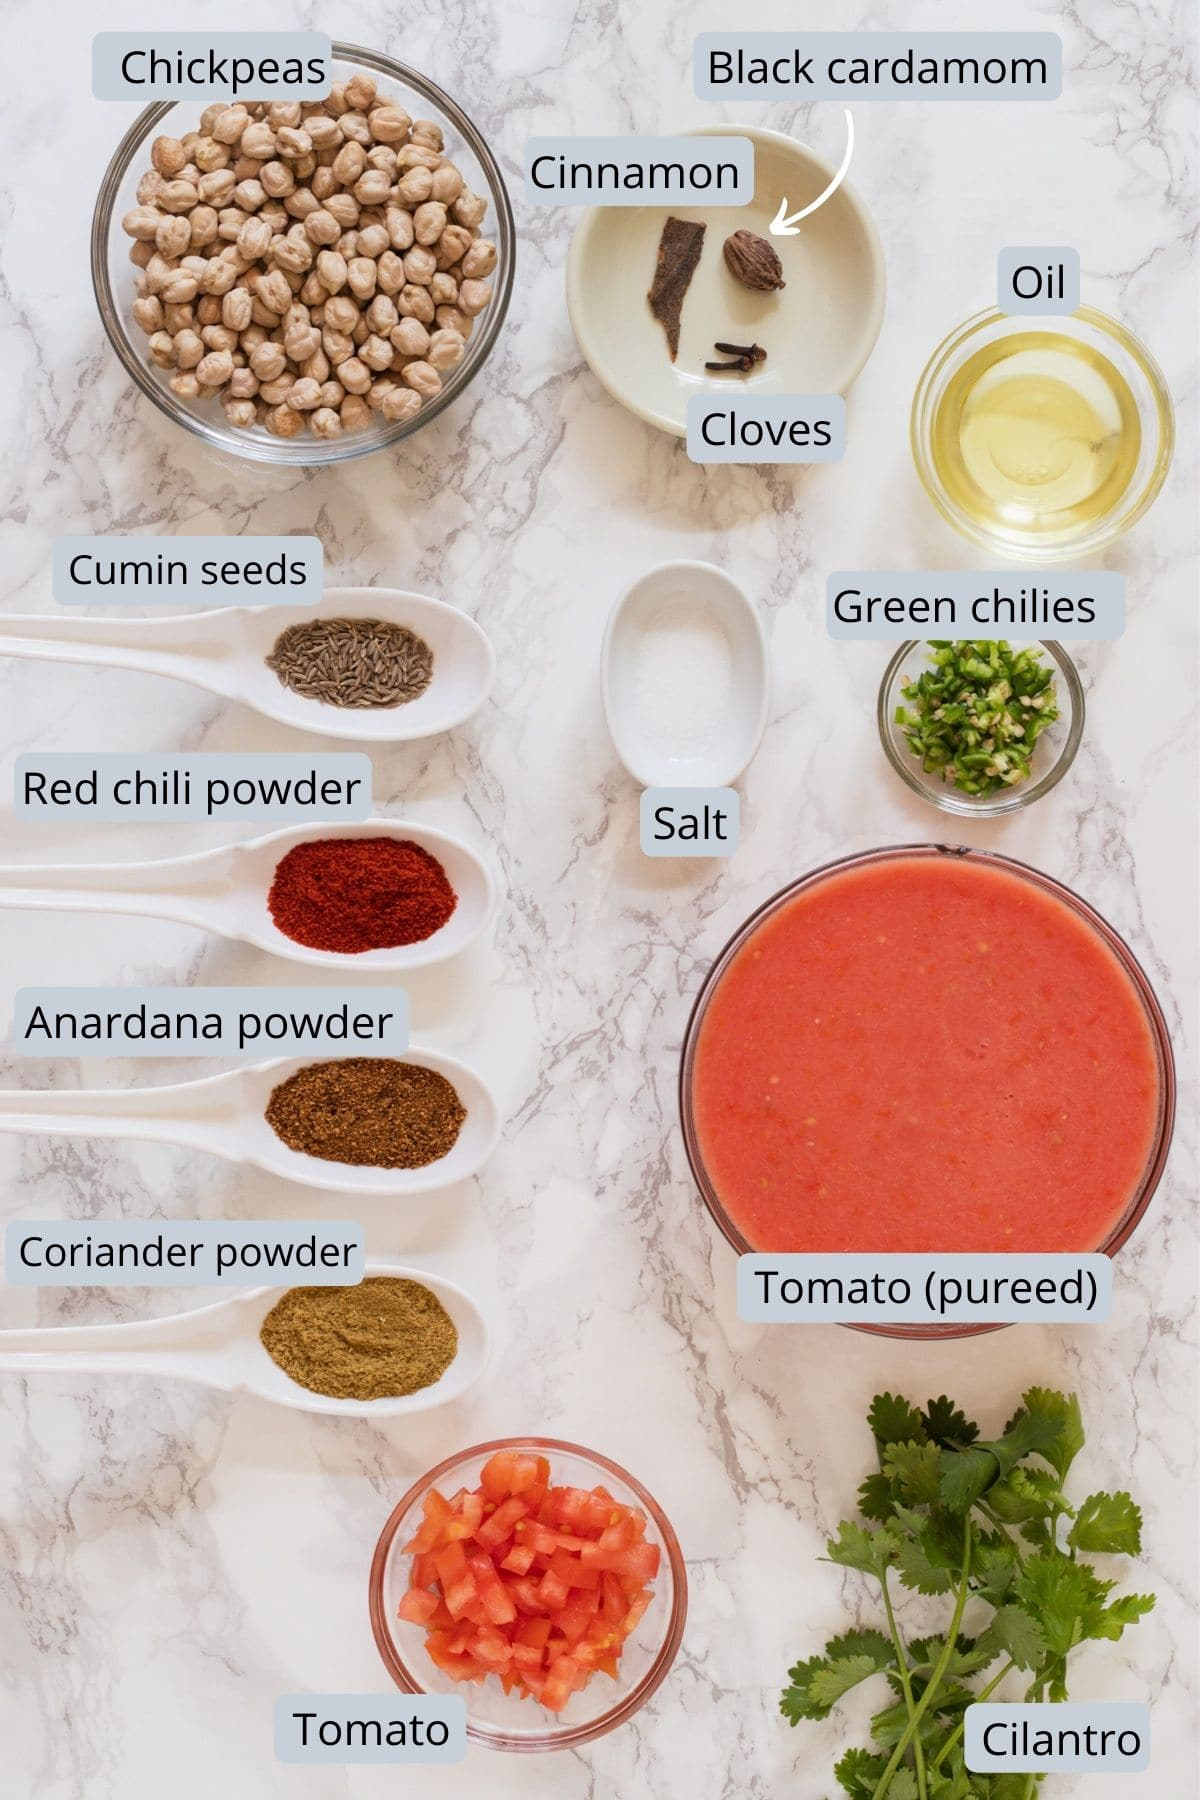 Ingredients used in Jain chole includes chickpeas, spices, oil, salt, green chili, tomato, cilantro